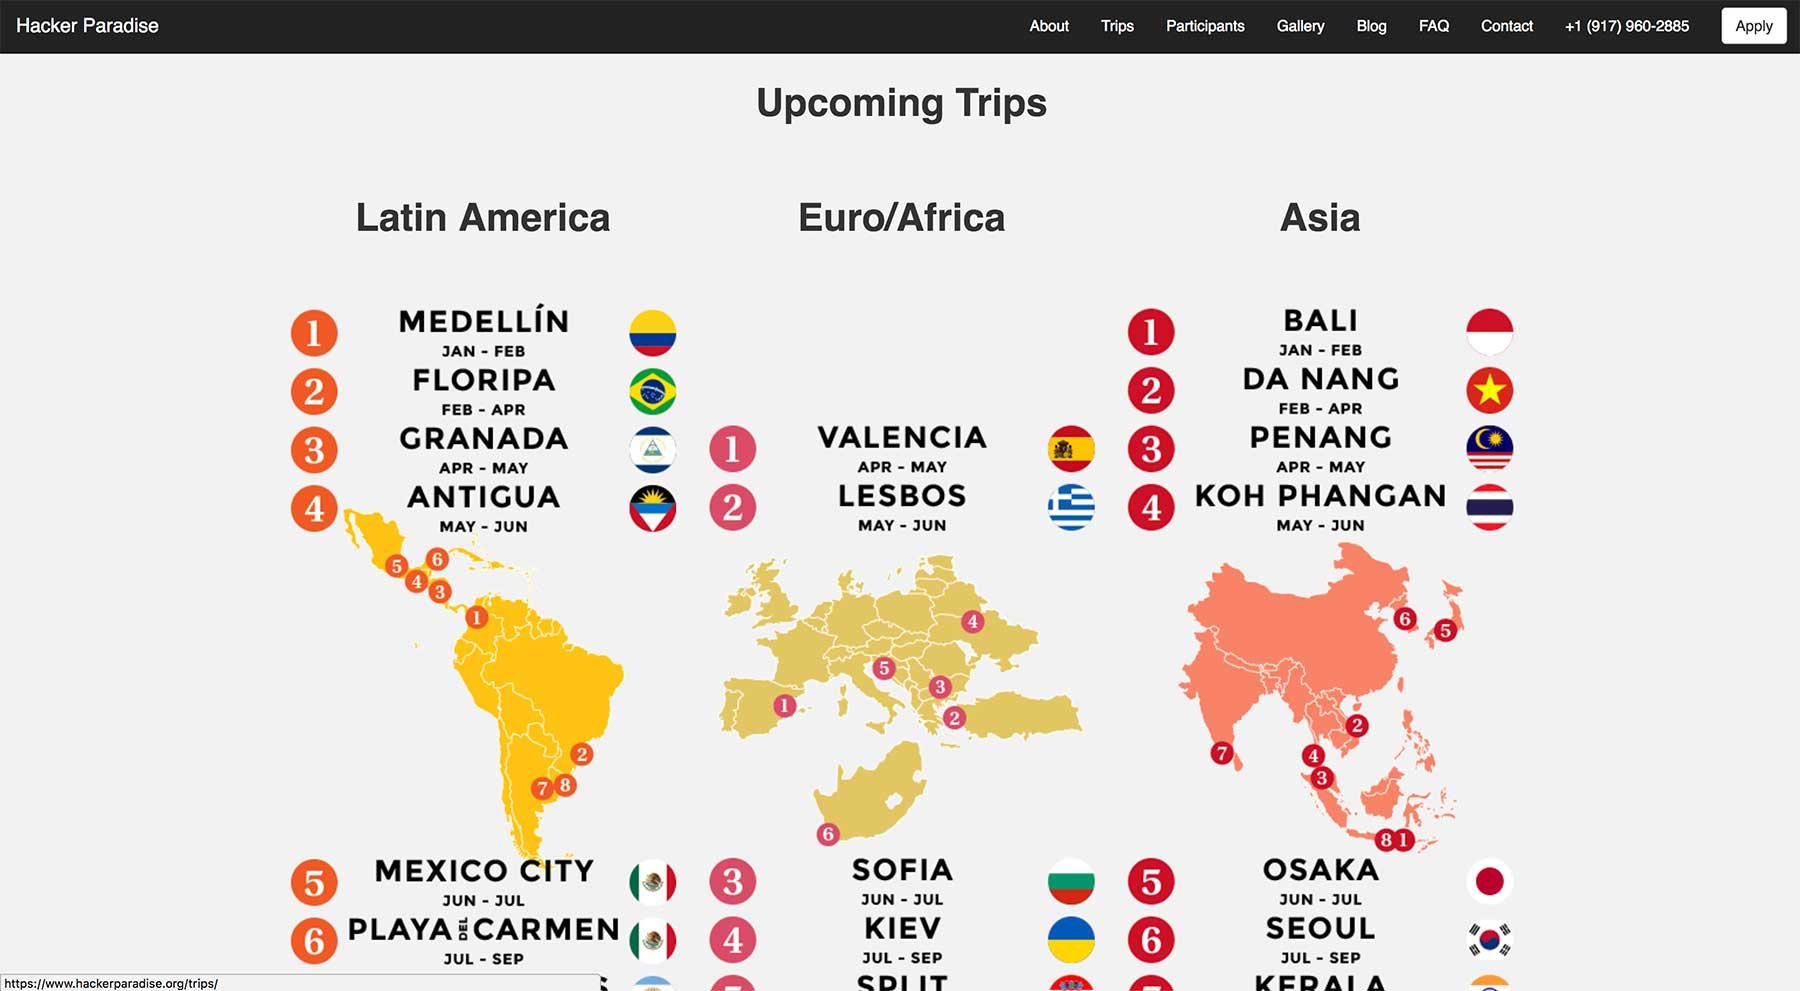 Hacker Paradise upcoming trips